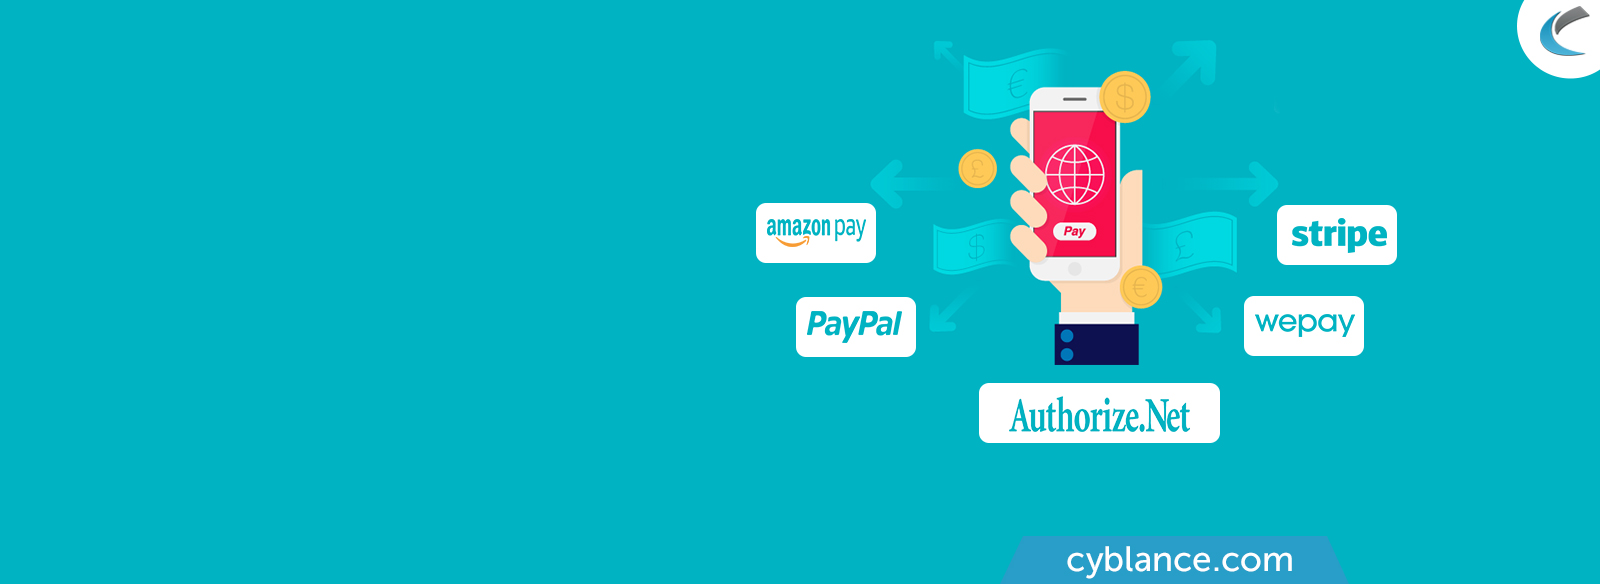 payment gateway integration in mobile application